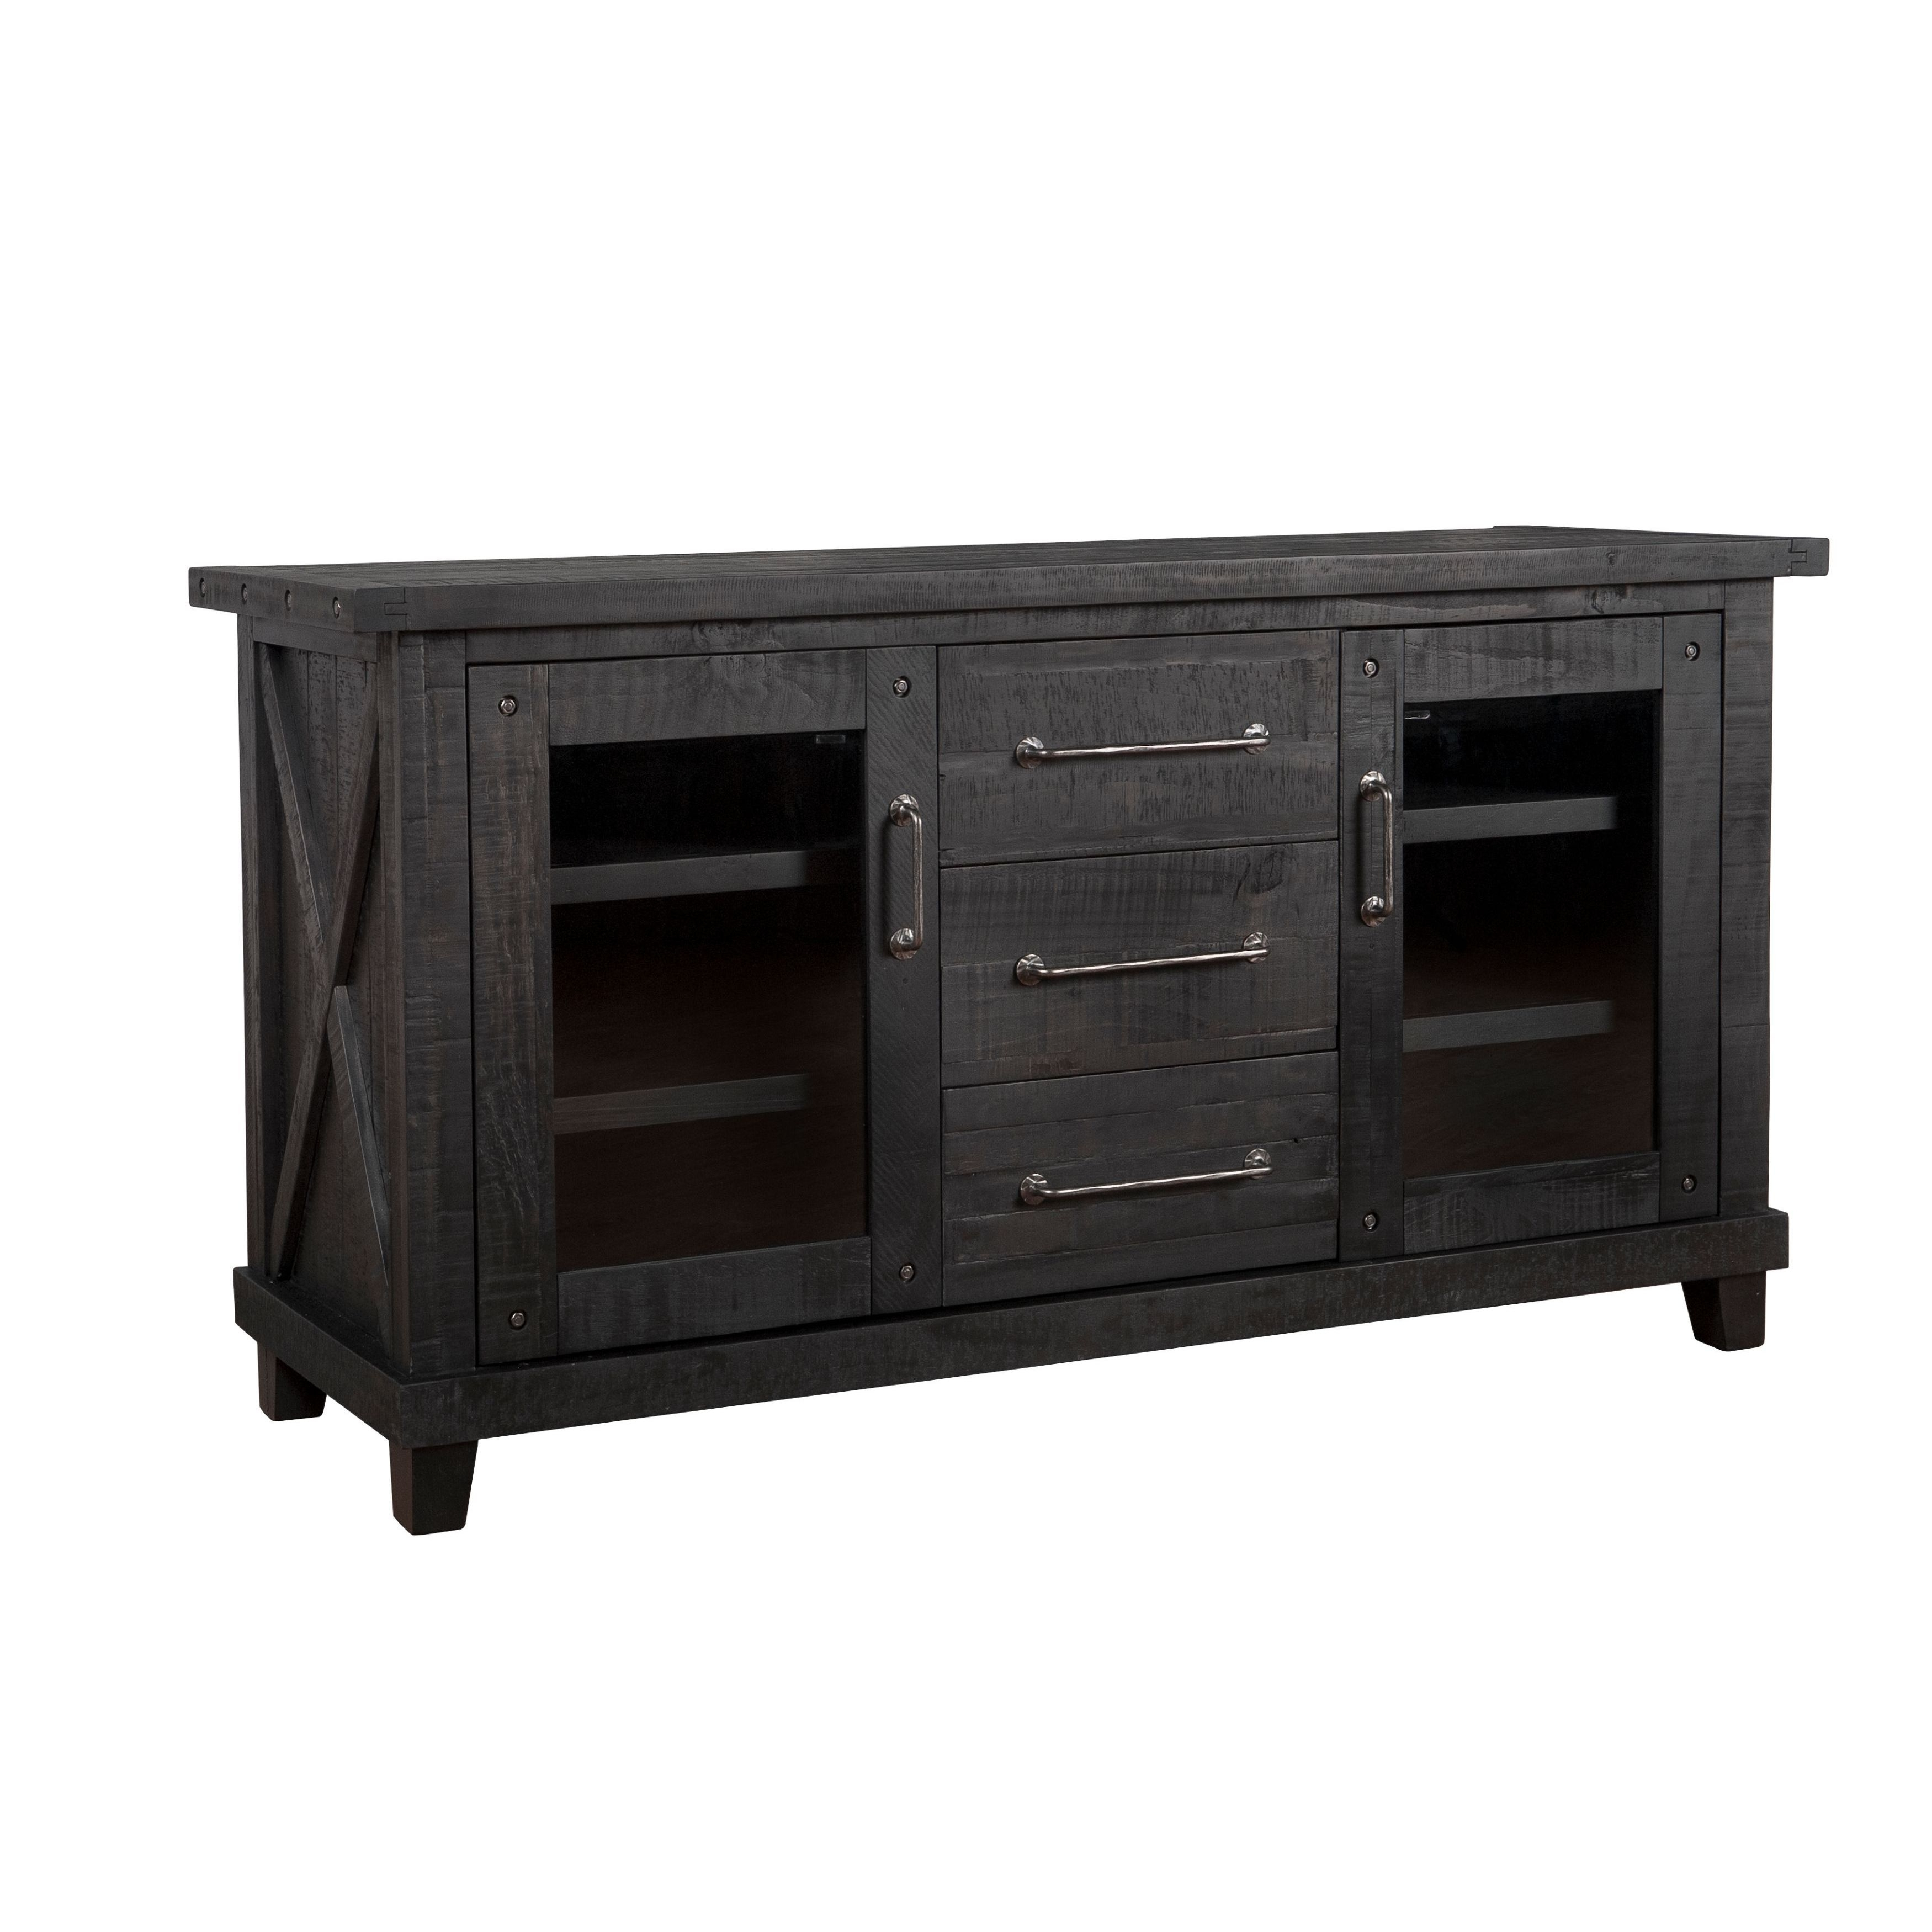 Popular Photo of Rustic Black & Zebra Pine Sideboards